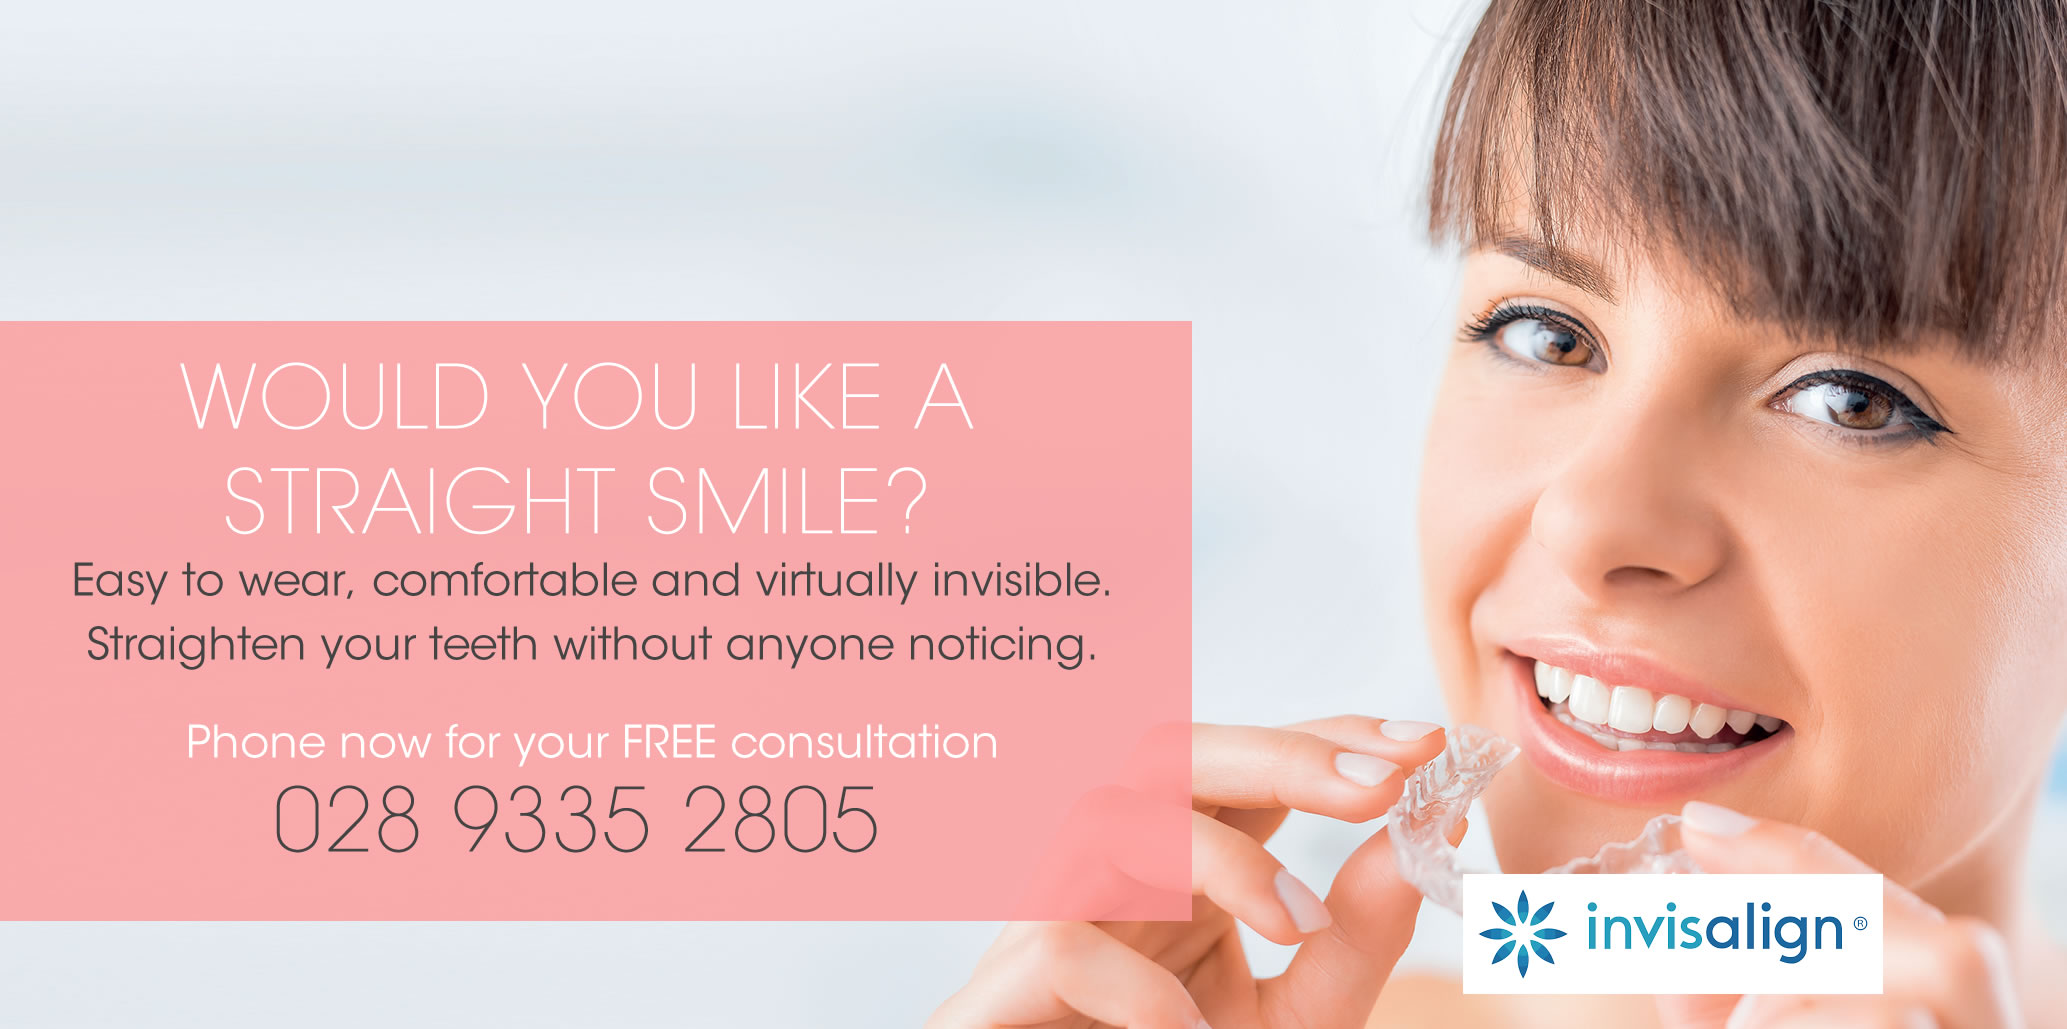 Invisalign at Ballyclare Dental Practice